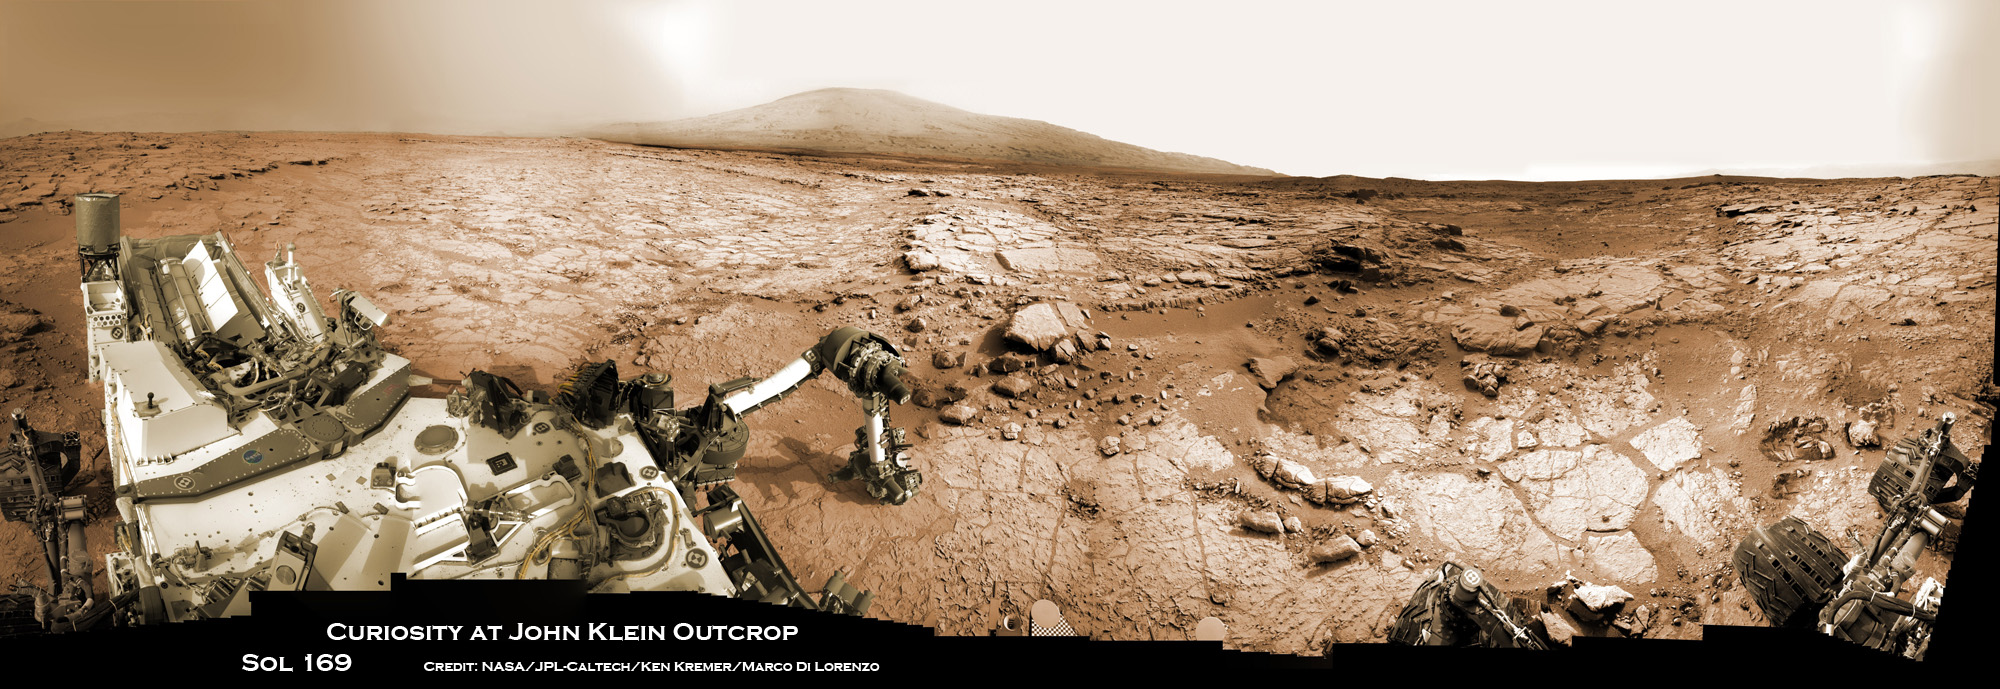 Stunning Mars Panoramas Capture Curiosity Rover at Work (Photos)